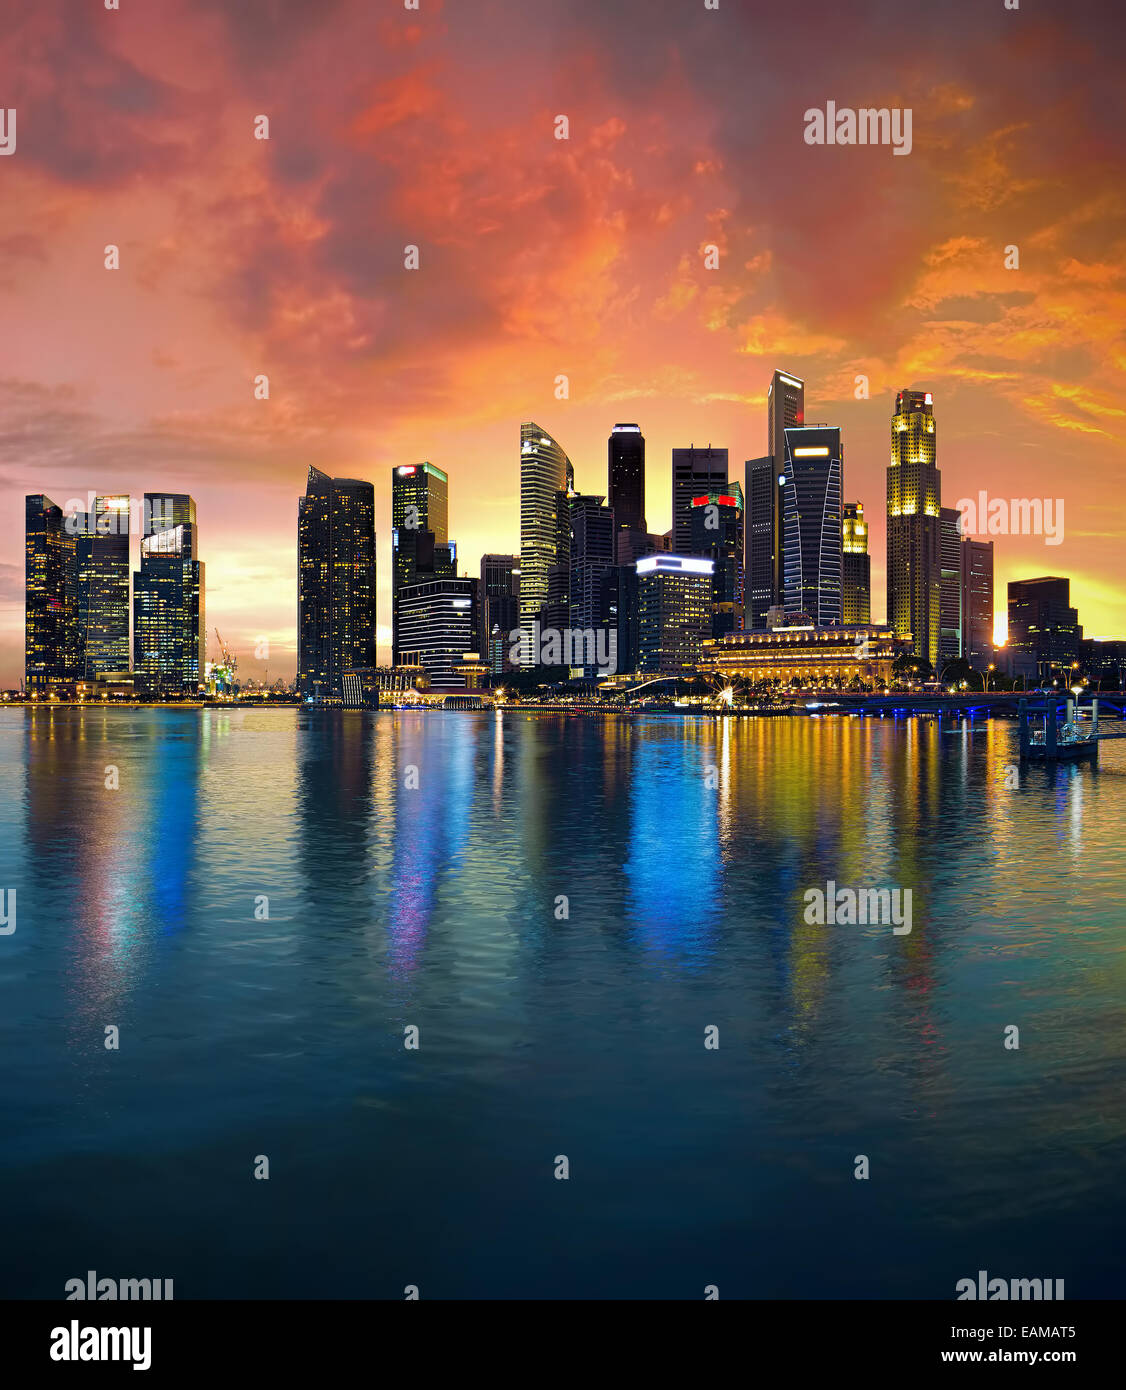 Singapour Skyline at sunset Photo Stock